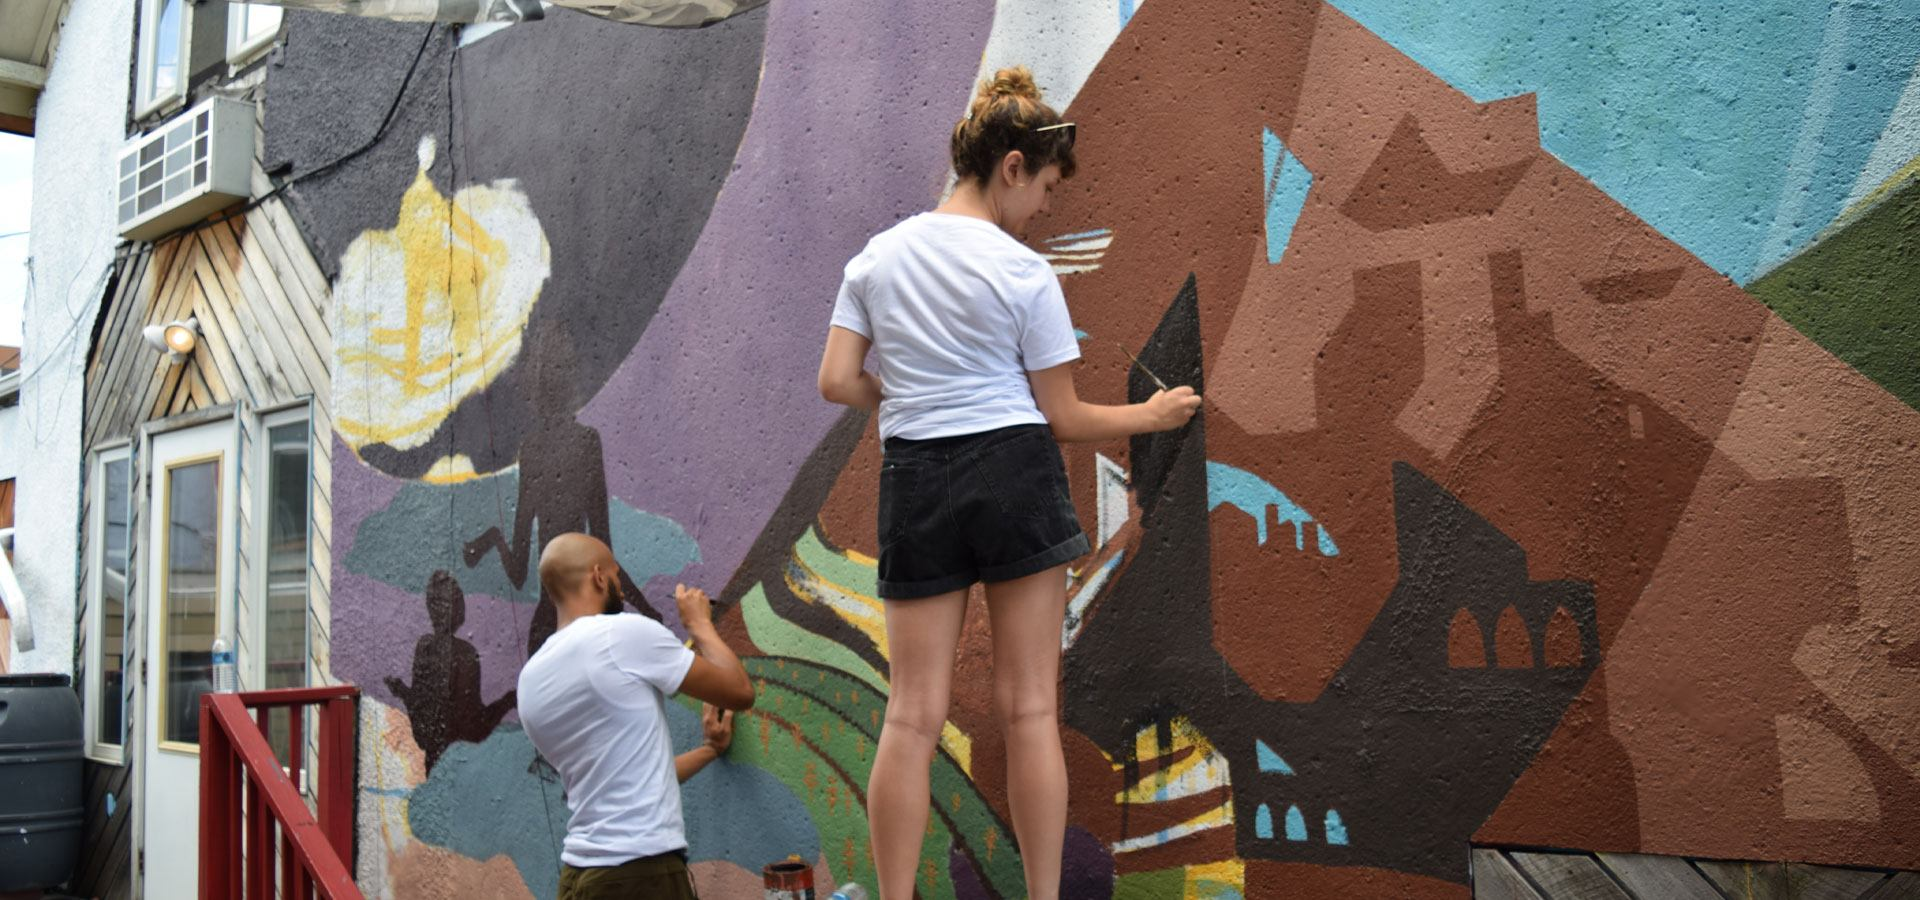 A young person painting a large scale mural